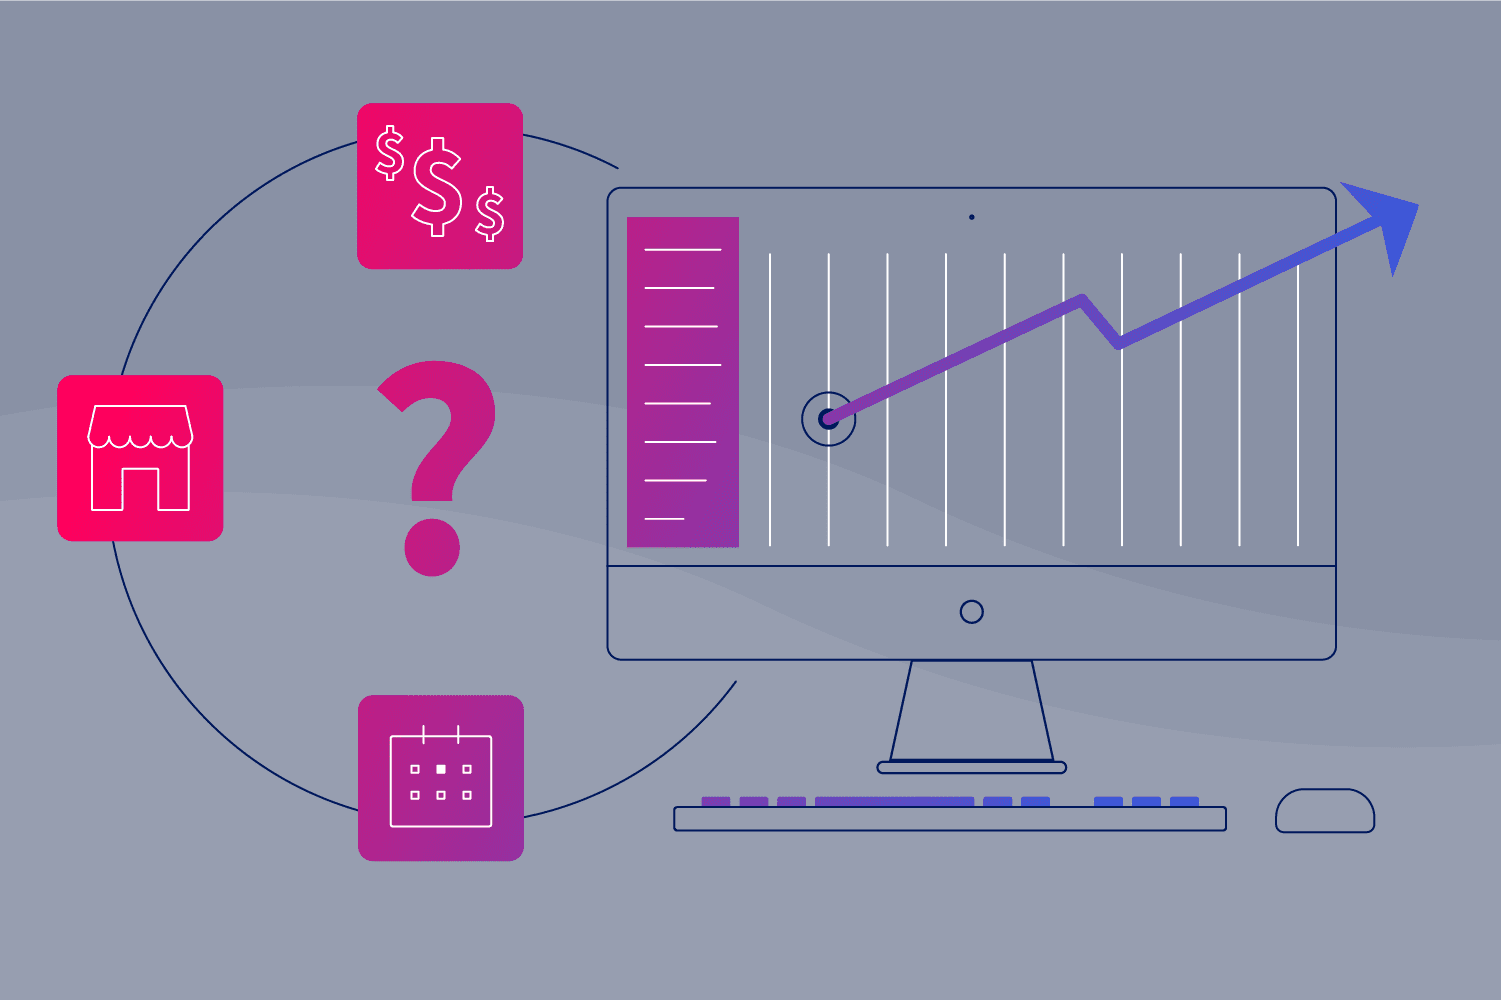 Line illustration of question mark and computer to depict reasons of not upgrading growth marketing platform